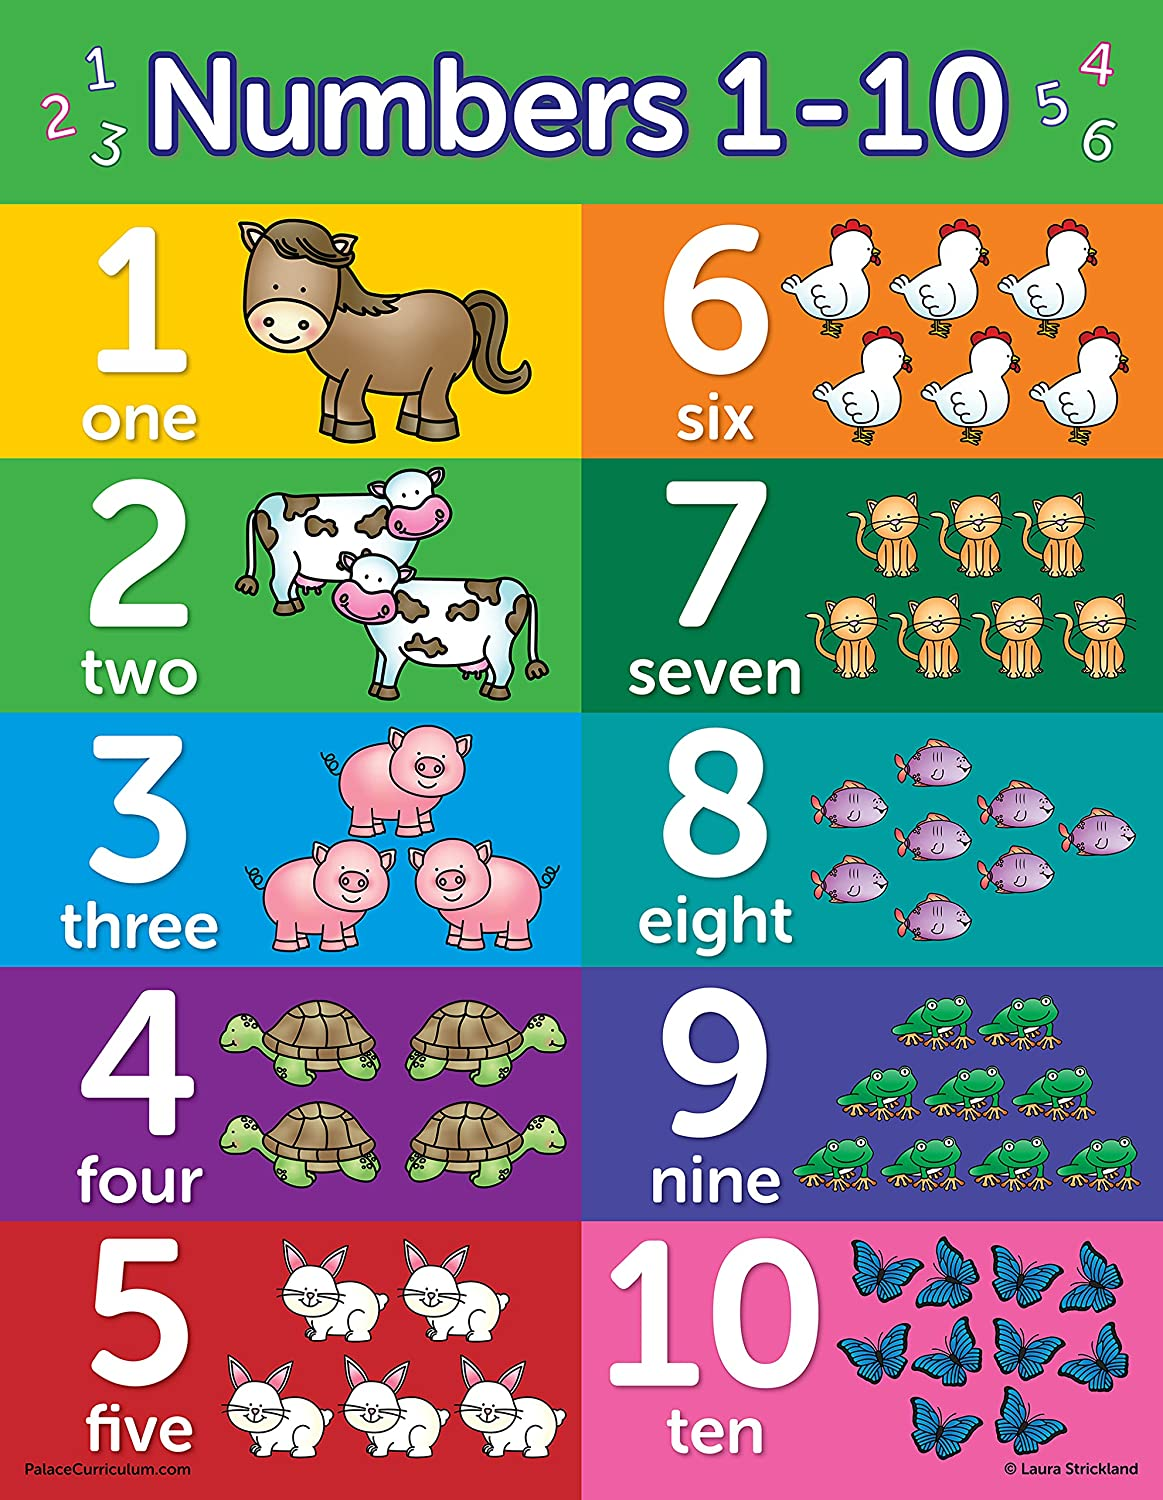 Amazon.com: 10 Educational Wall Posters For Toddlers - ABC ...